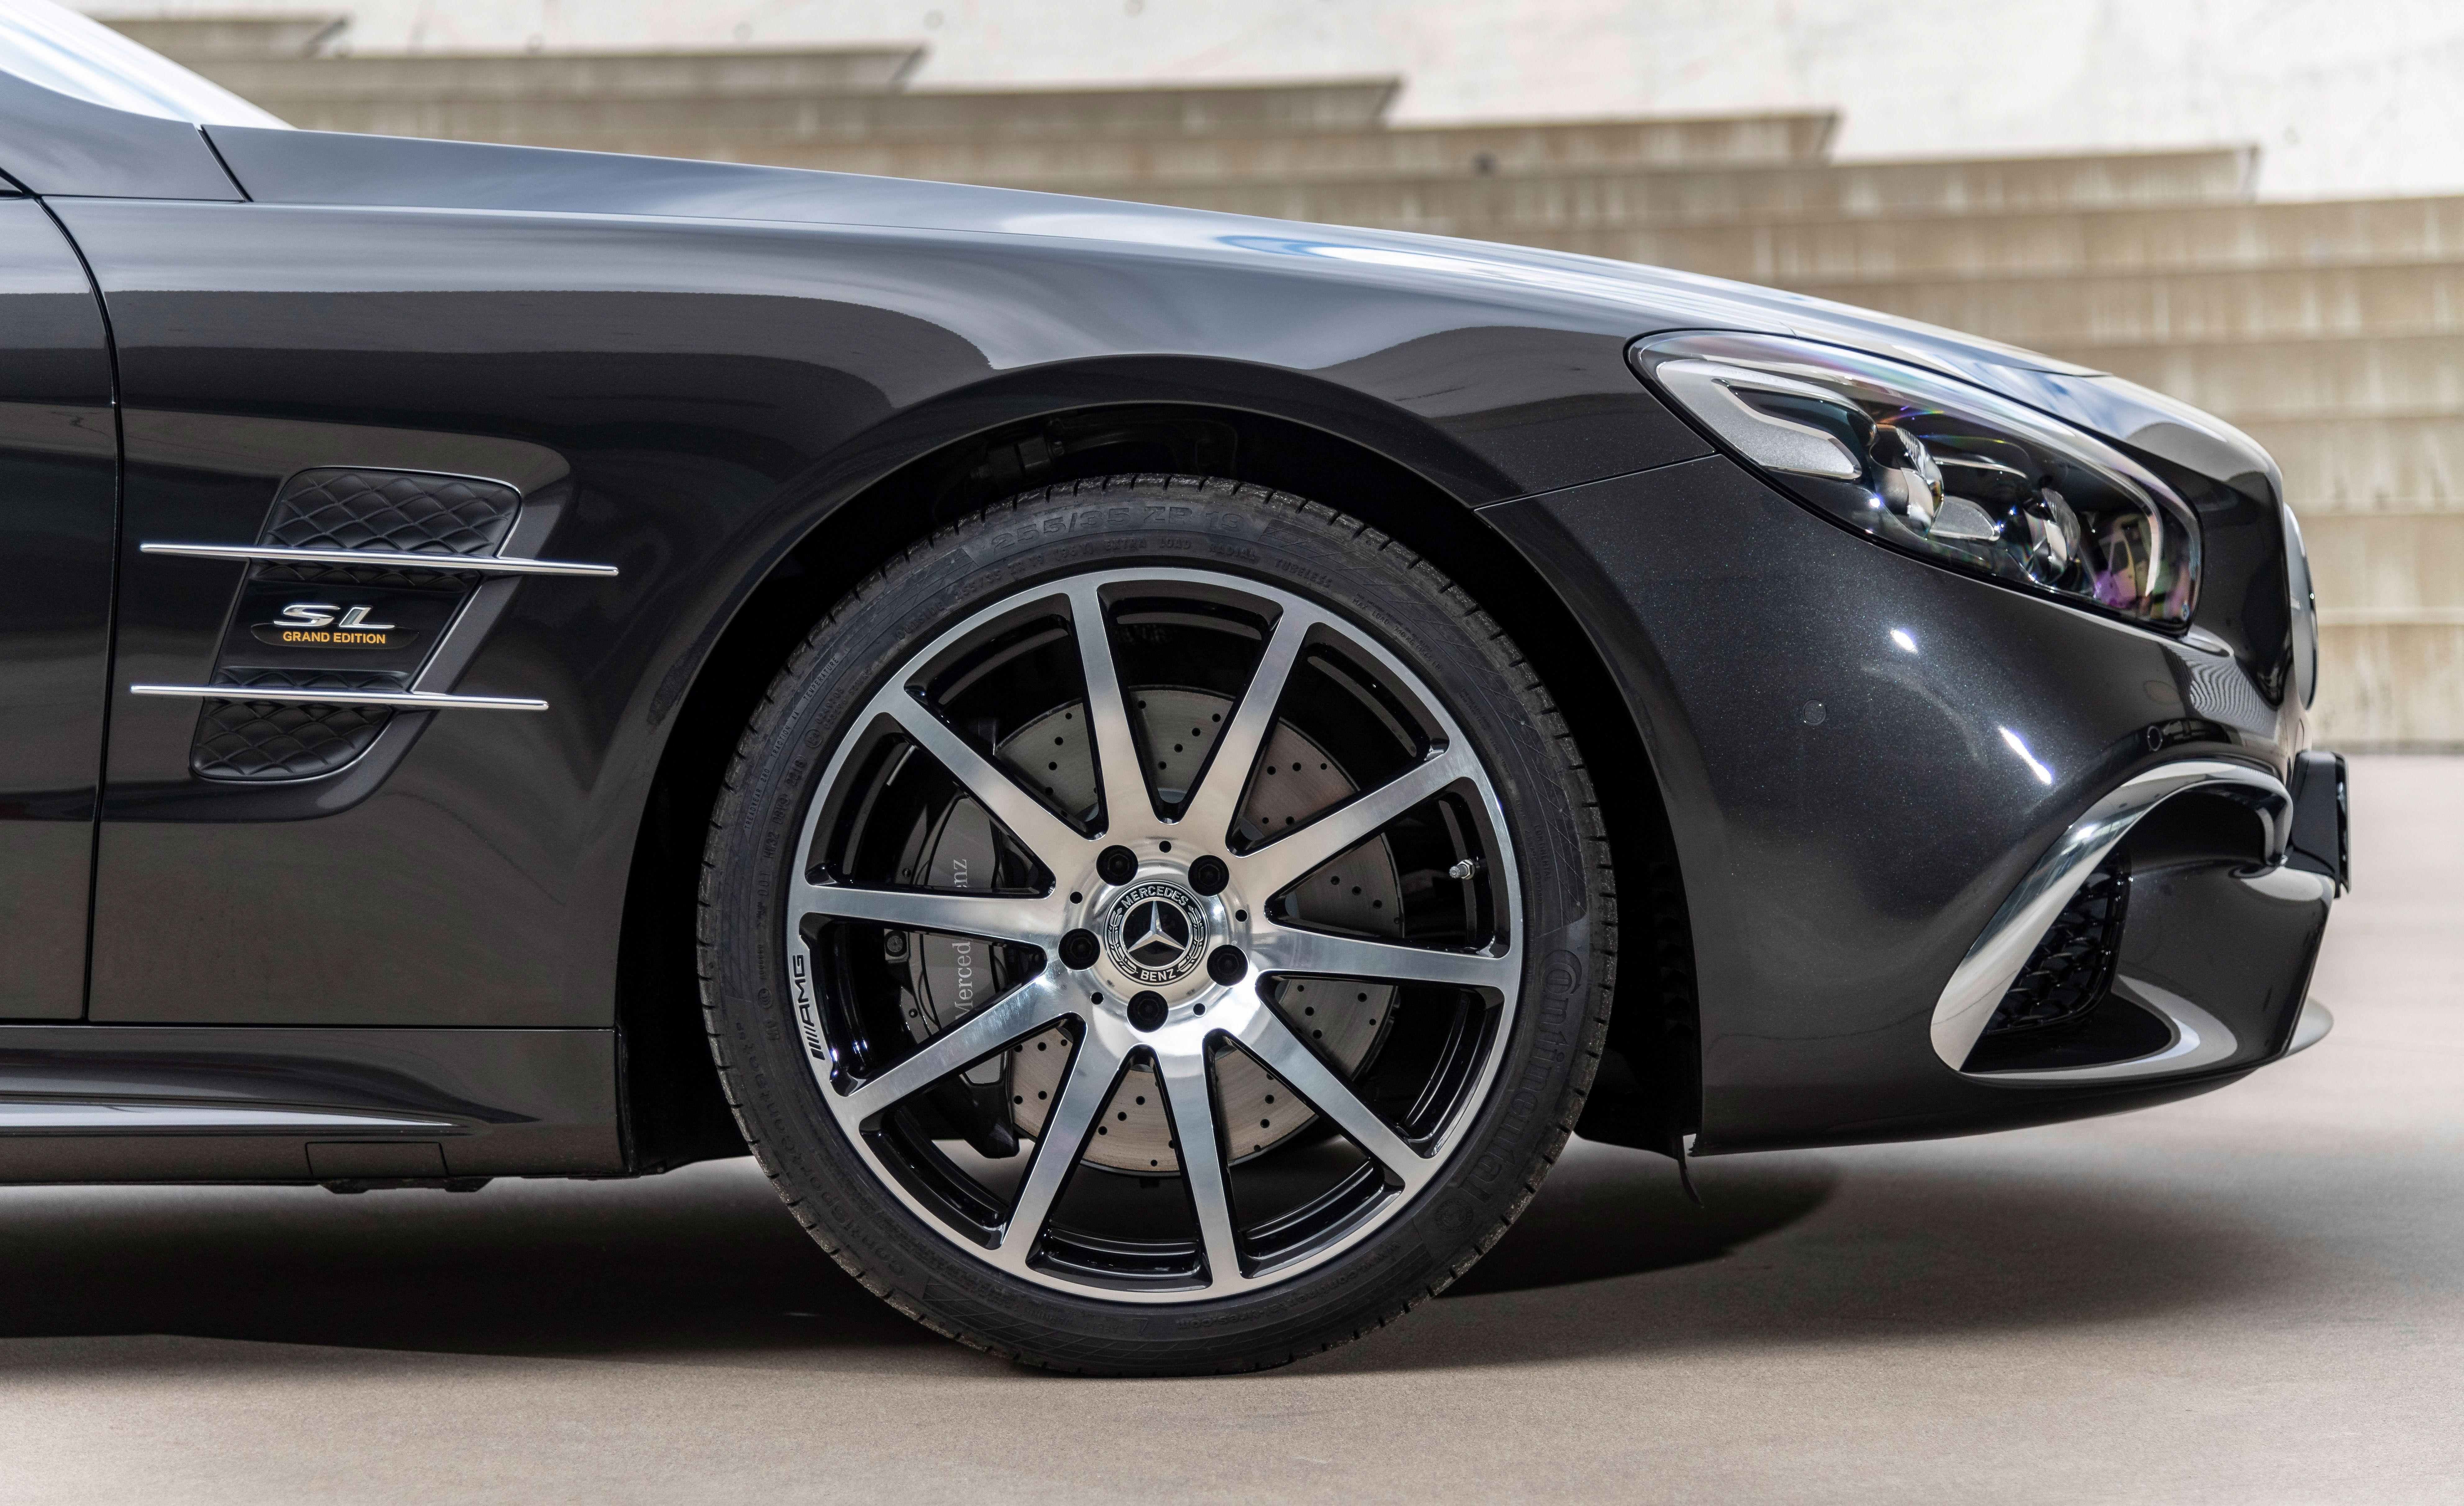 """<p>As the sixth generation of the classic <a href=""""https://www.caranddriver.com/mercedes-benz/sl-class"""" rel=""""nofollow noopener"""" target=""""_blank"""" data-ylk=""""slk:Mercedes-Benz SL"""" class=""""link rapid-noclick-resp"""">Mercedes-Benz SL</a> comes to an end, the automaker is rolling out a special black-and-brown-themed Grand Edition.</p>"""